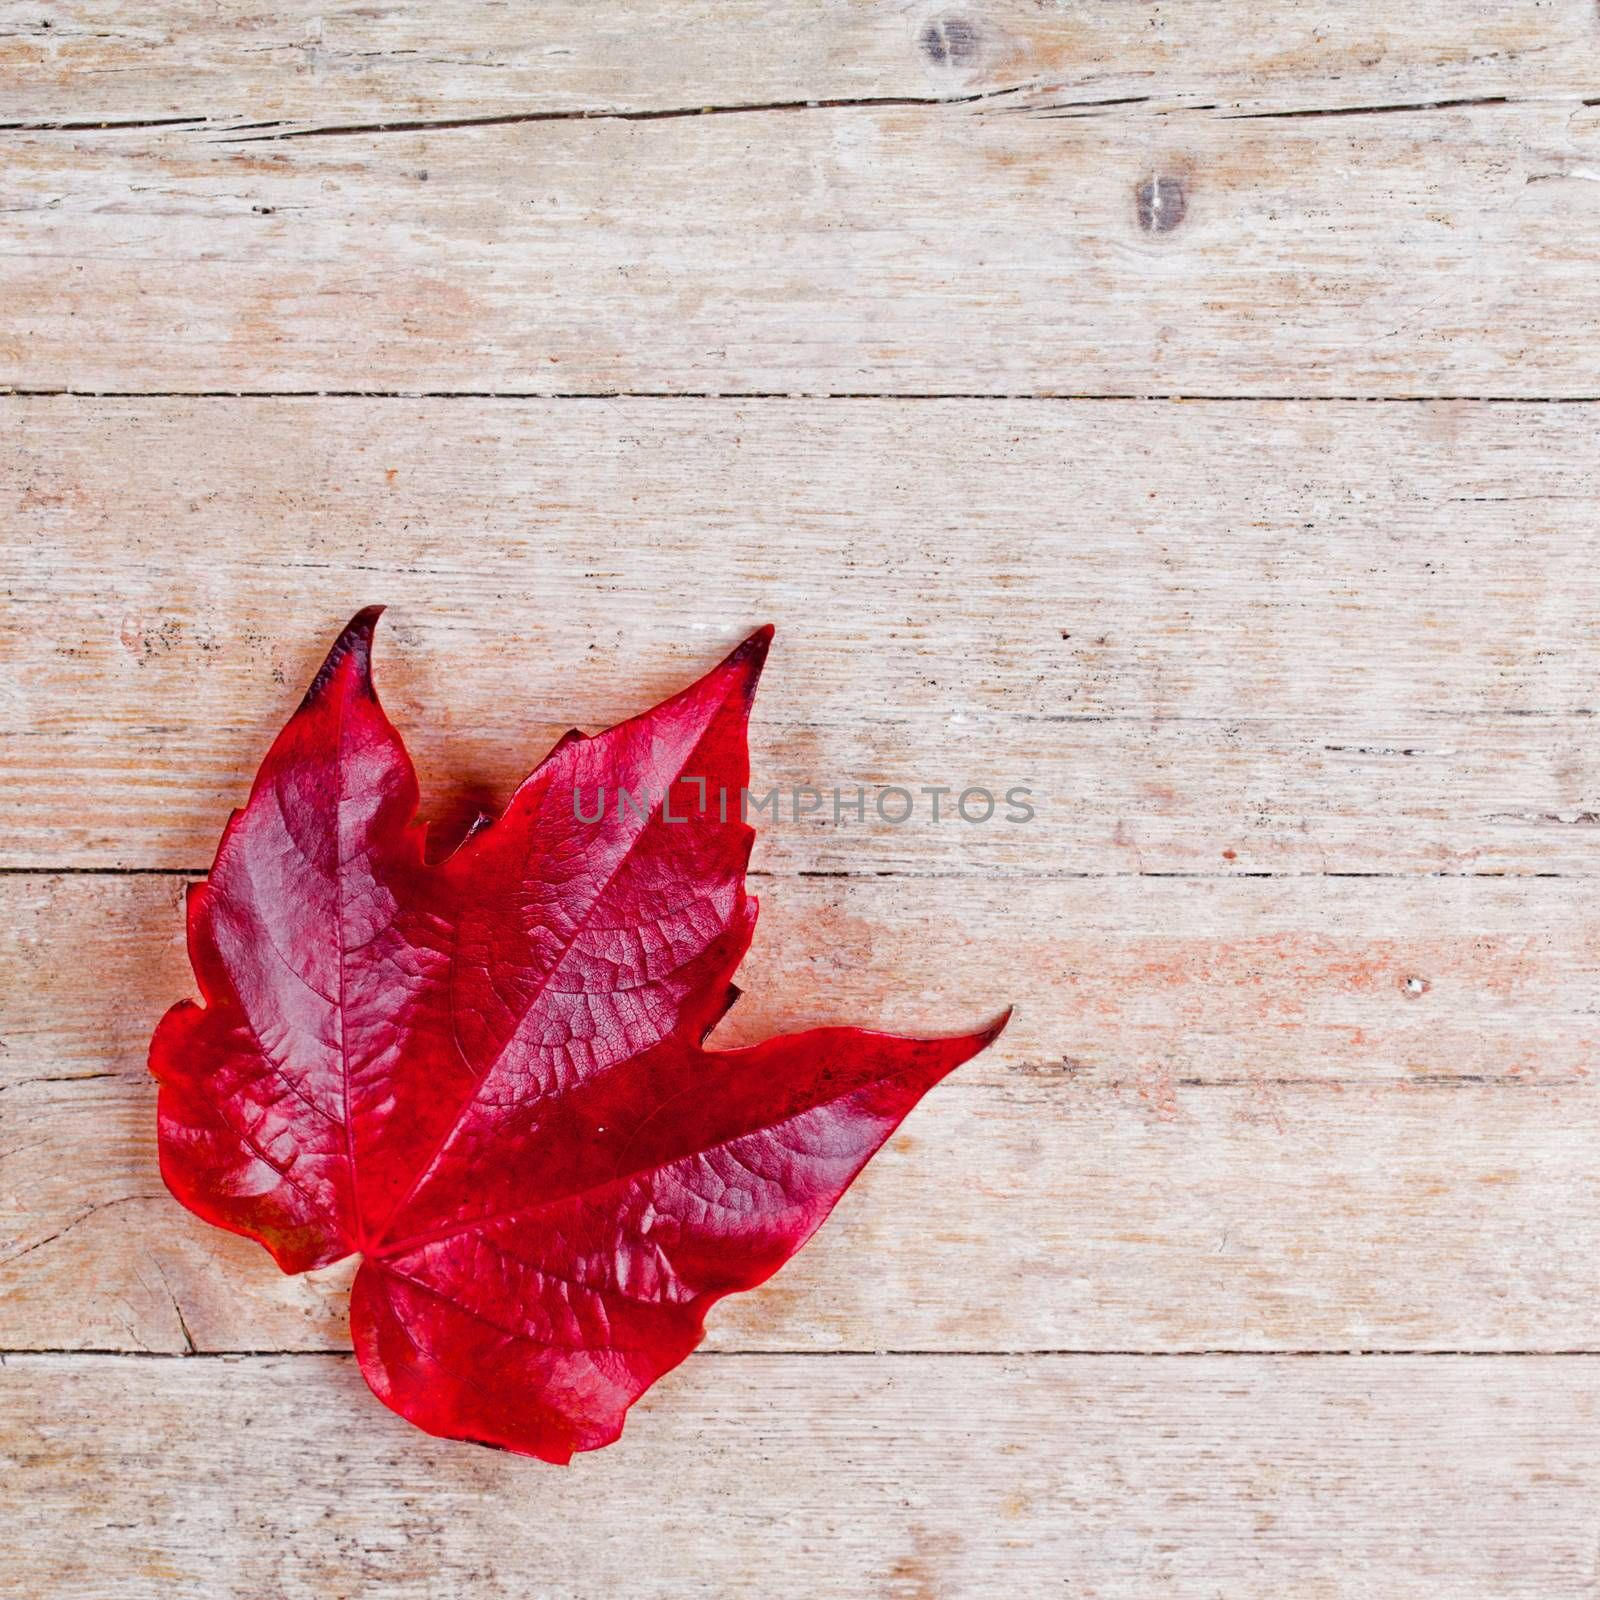 red autumn leaf on wooden background